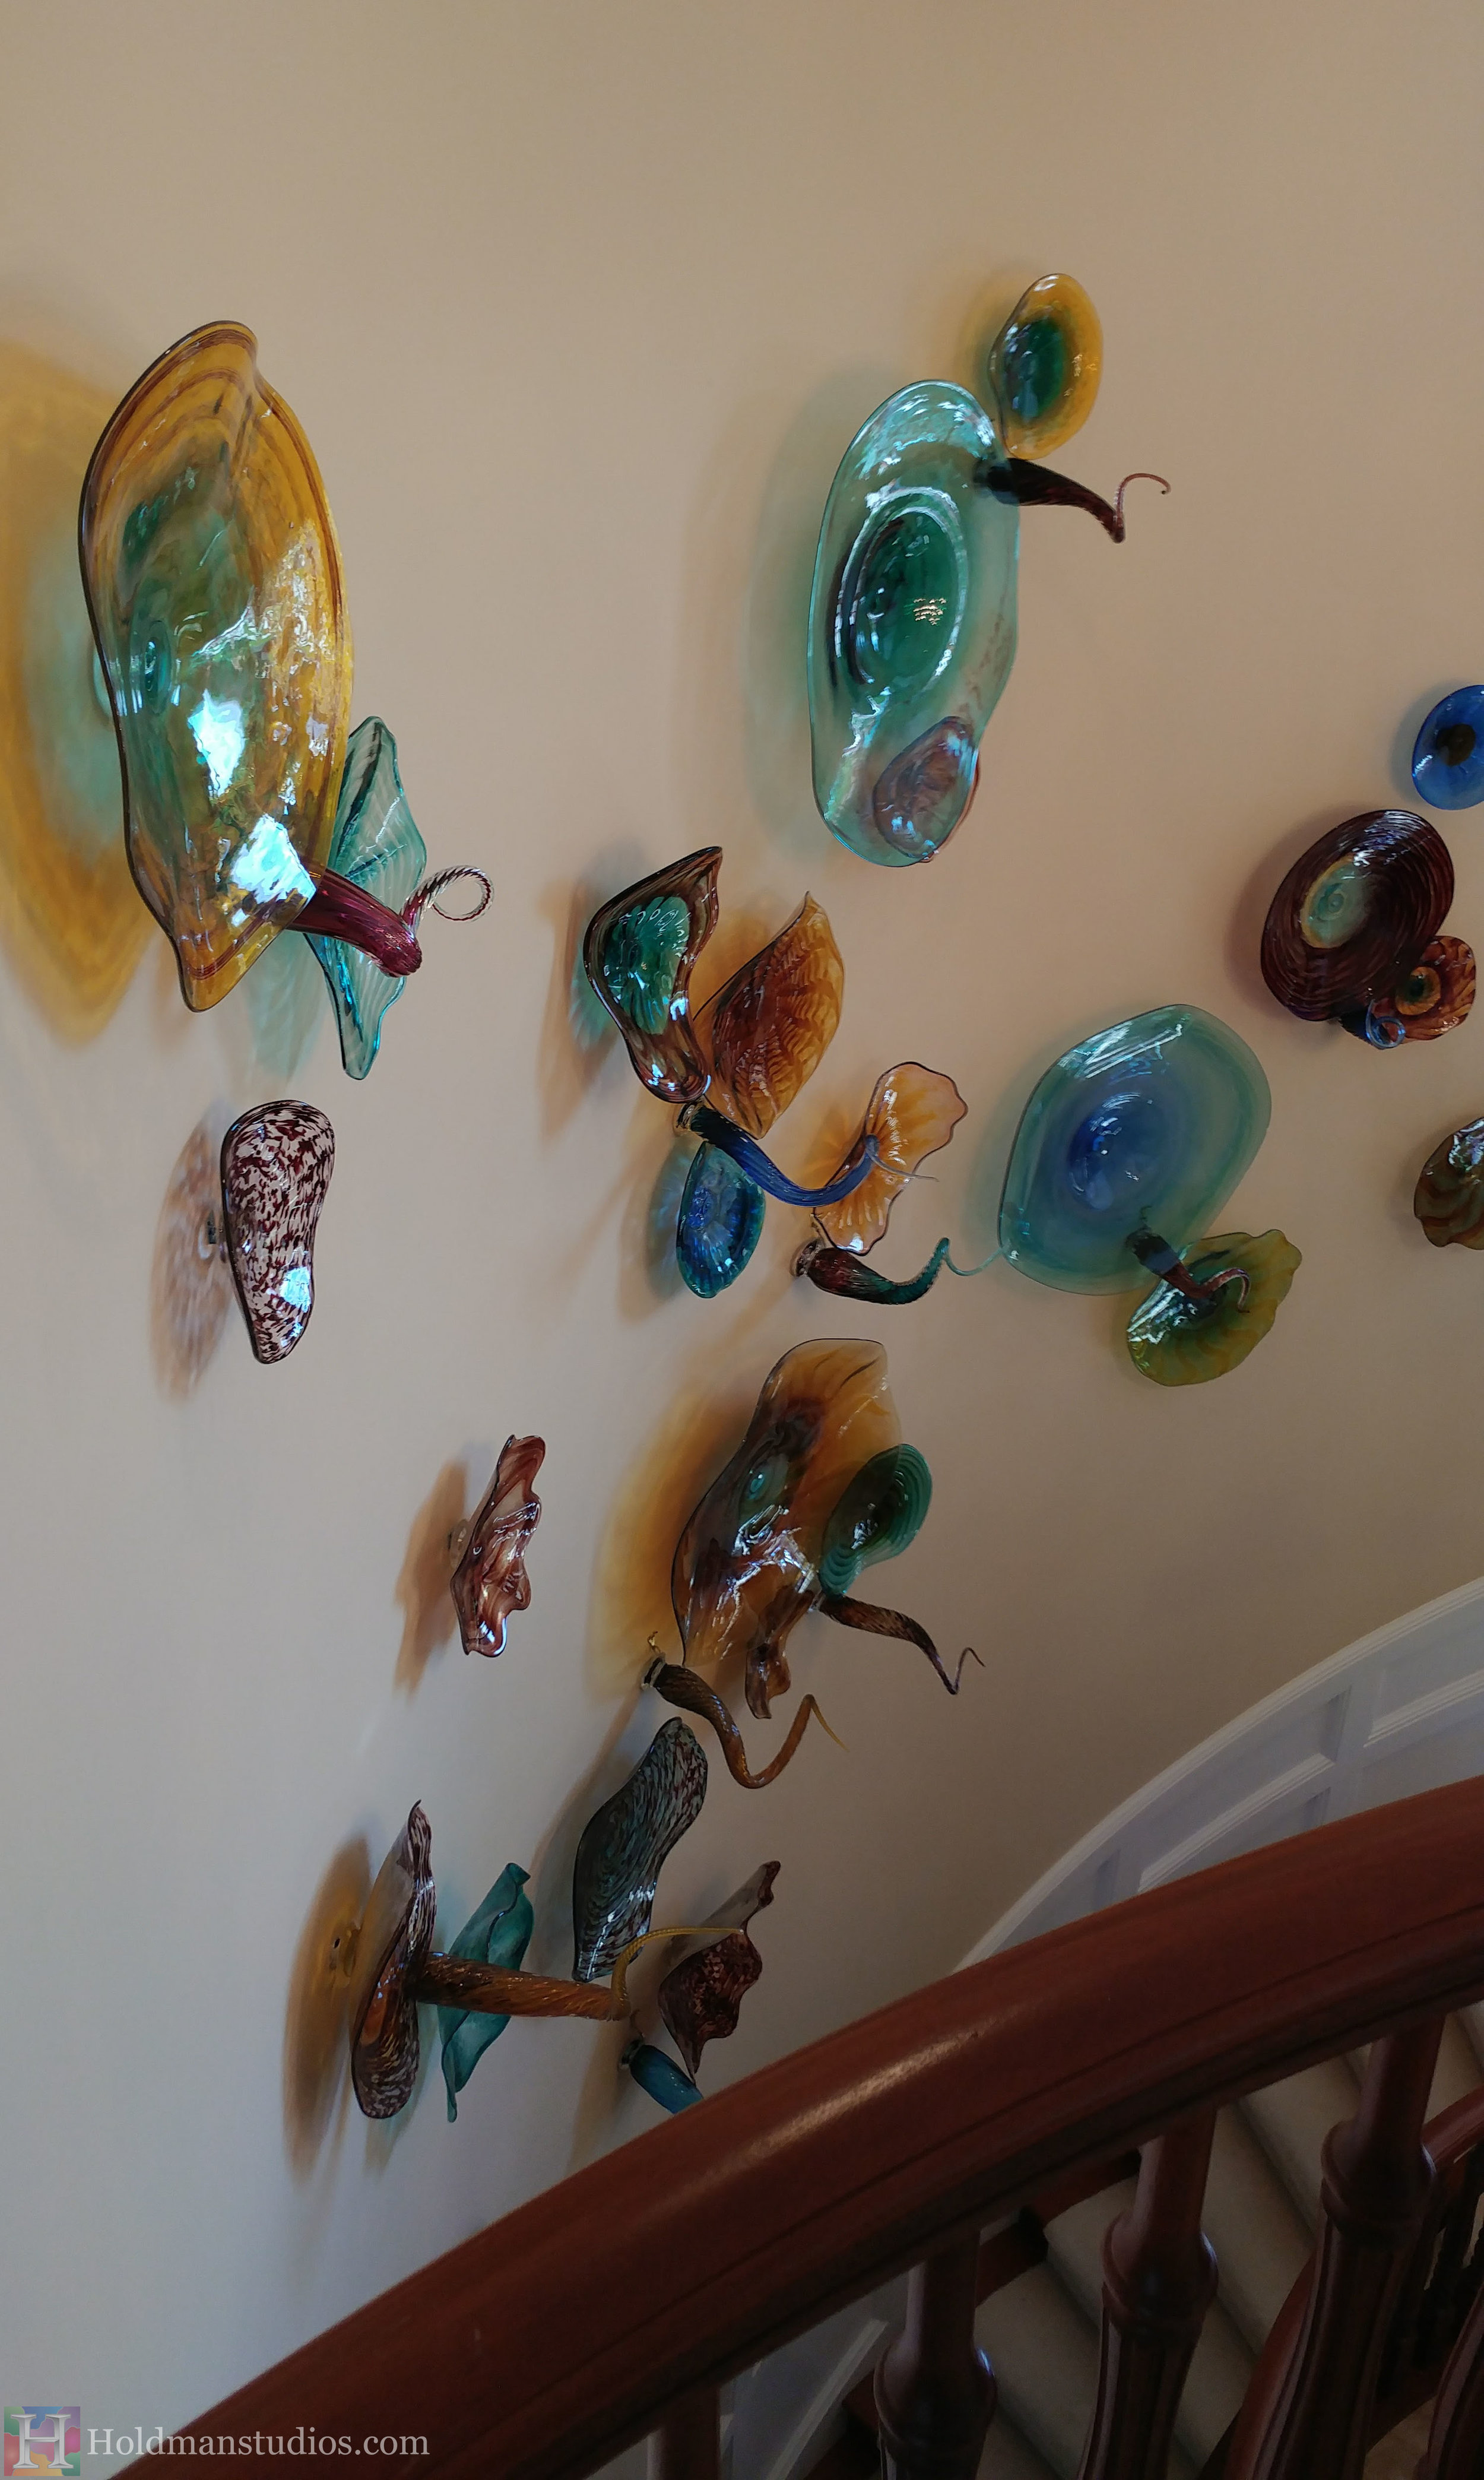 holdman-studios-hand-blown-glass-platters-bowls-tendrils-stair-wall-display-sideview.jpg